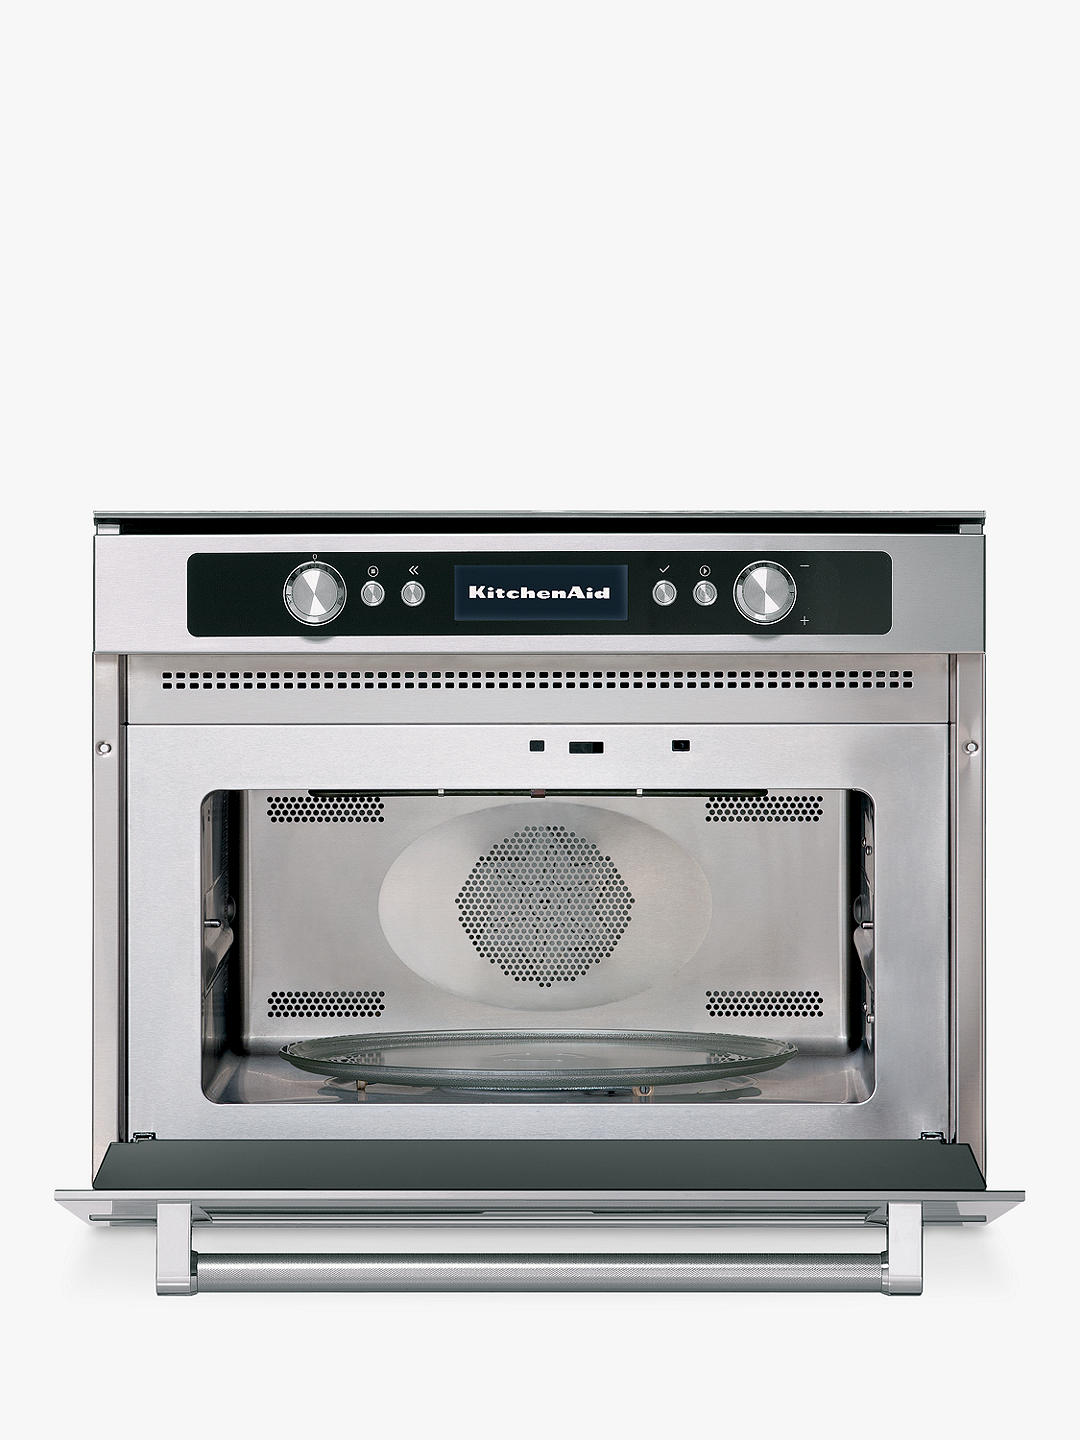 Buy KitchenAid KMQCX45600 Built-in Multifunction Microwave Oven, Stainless Steel Online at johnlewis.com